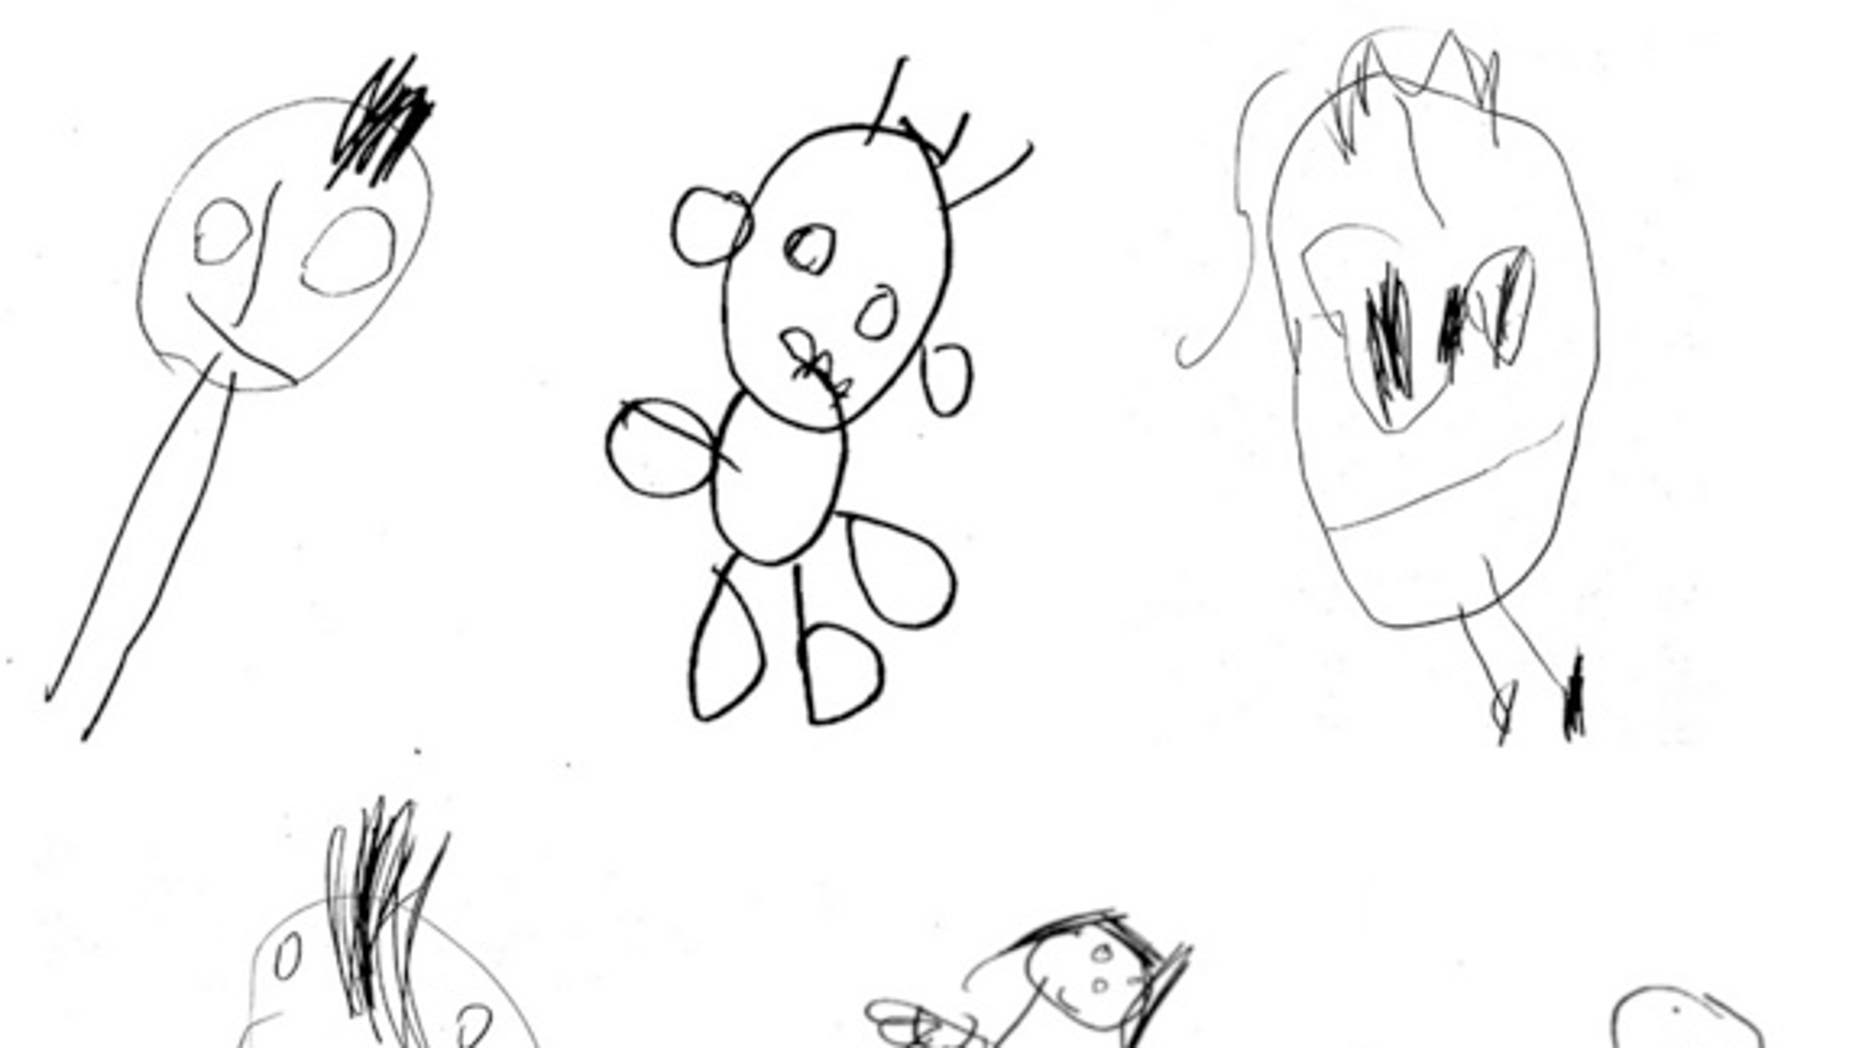 How to interpret kids' drawings new kids center.